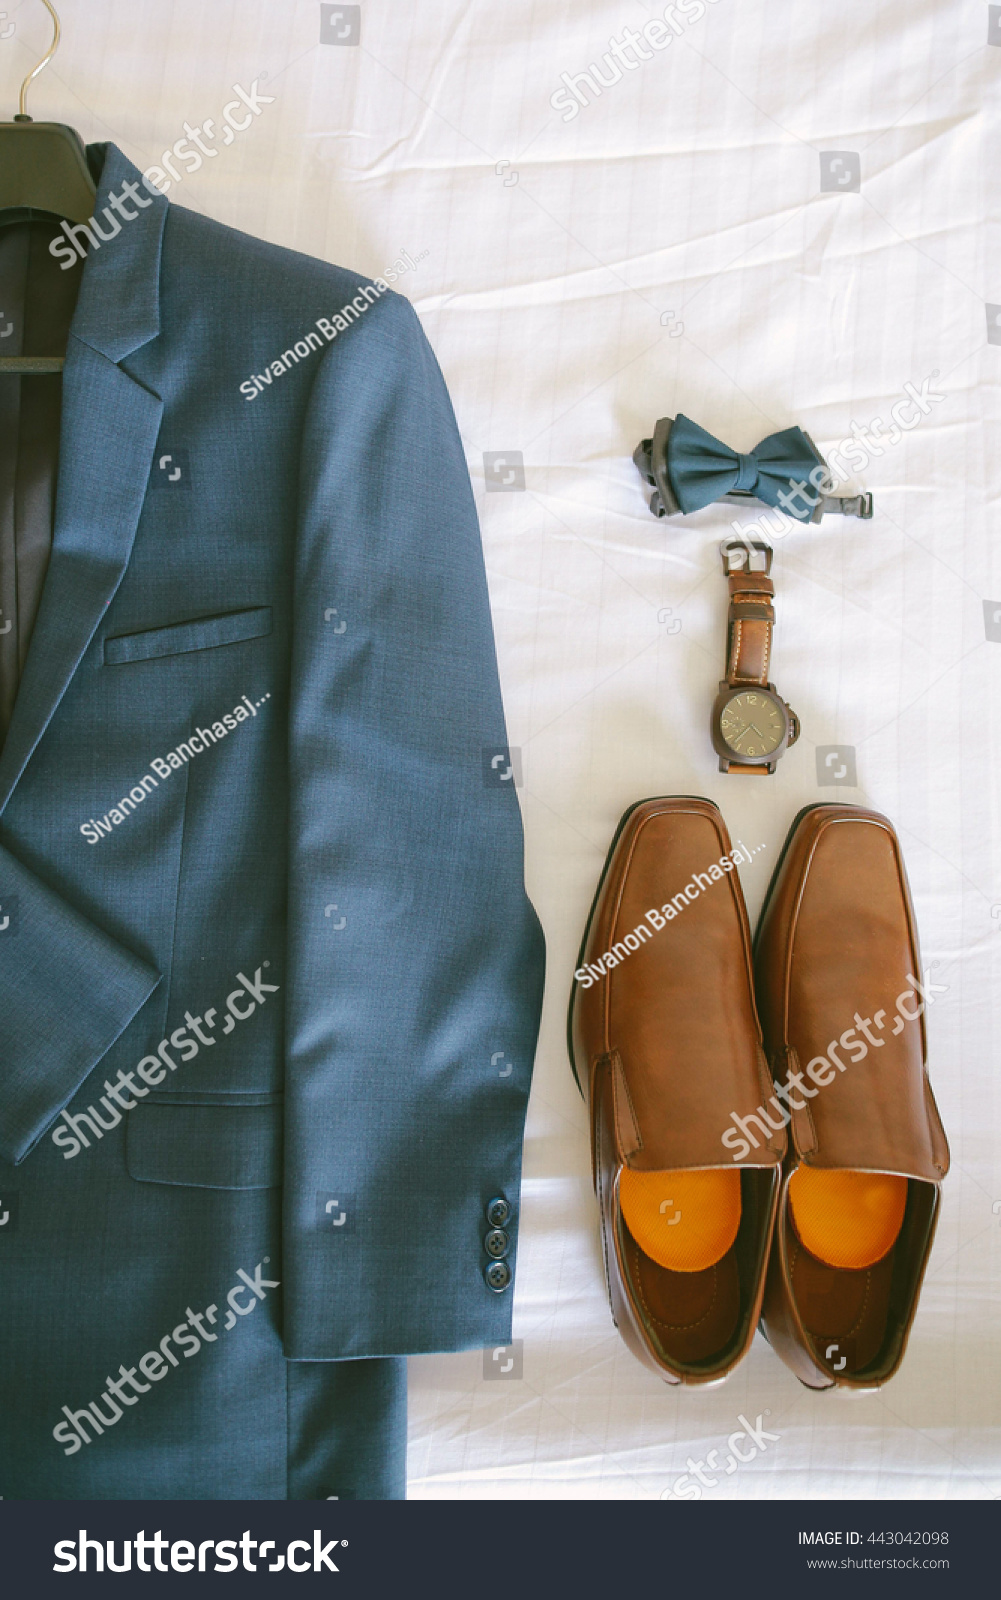 Royalty-free Blue suit, brown shoes, watch and bow… #443042098 Stock ...